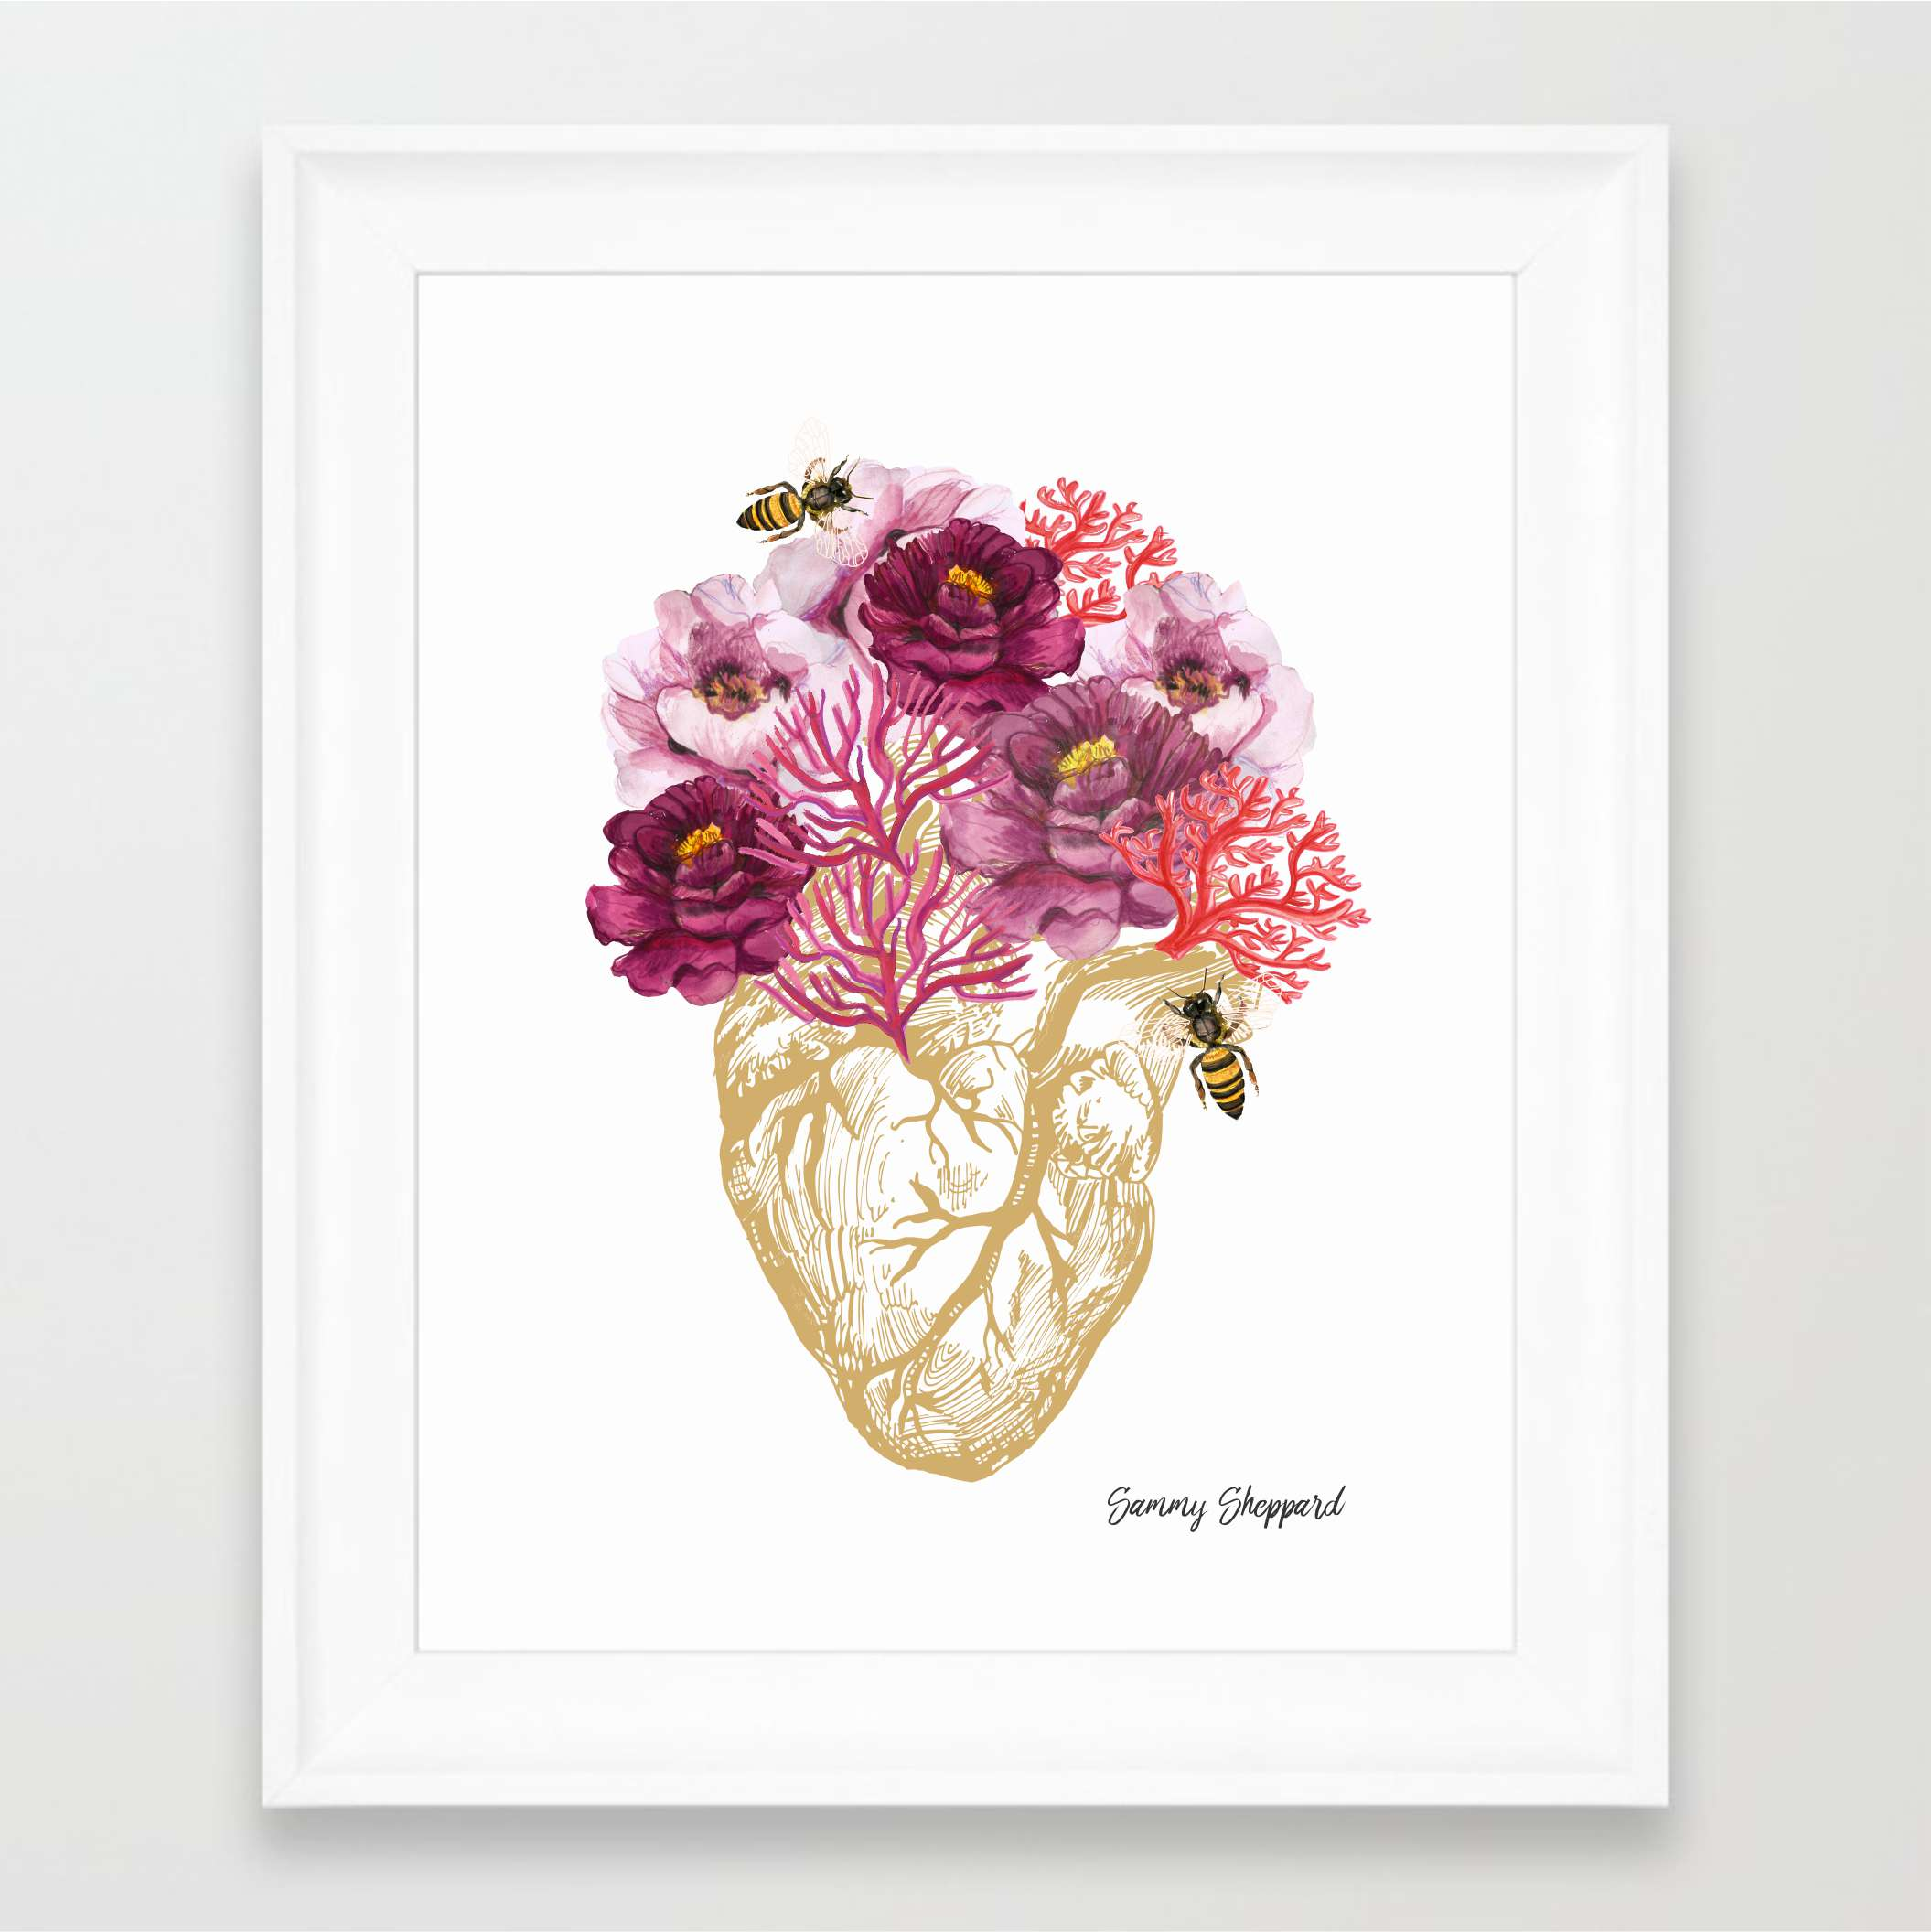 Own this beautiful hand illustrated print by Sammy Sheppard.